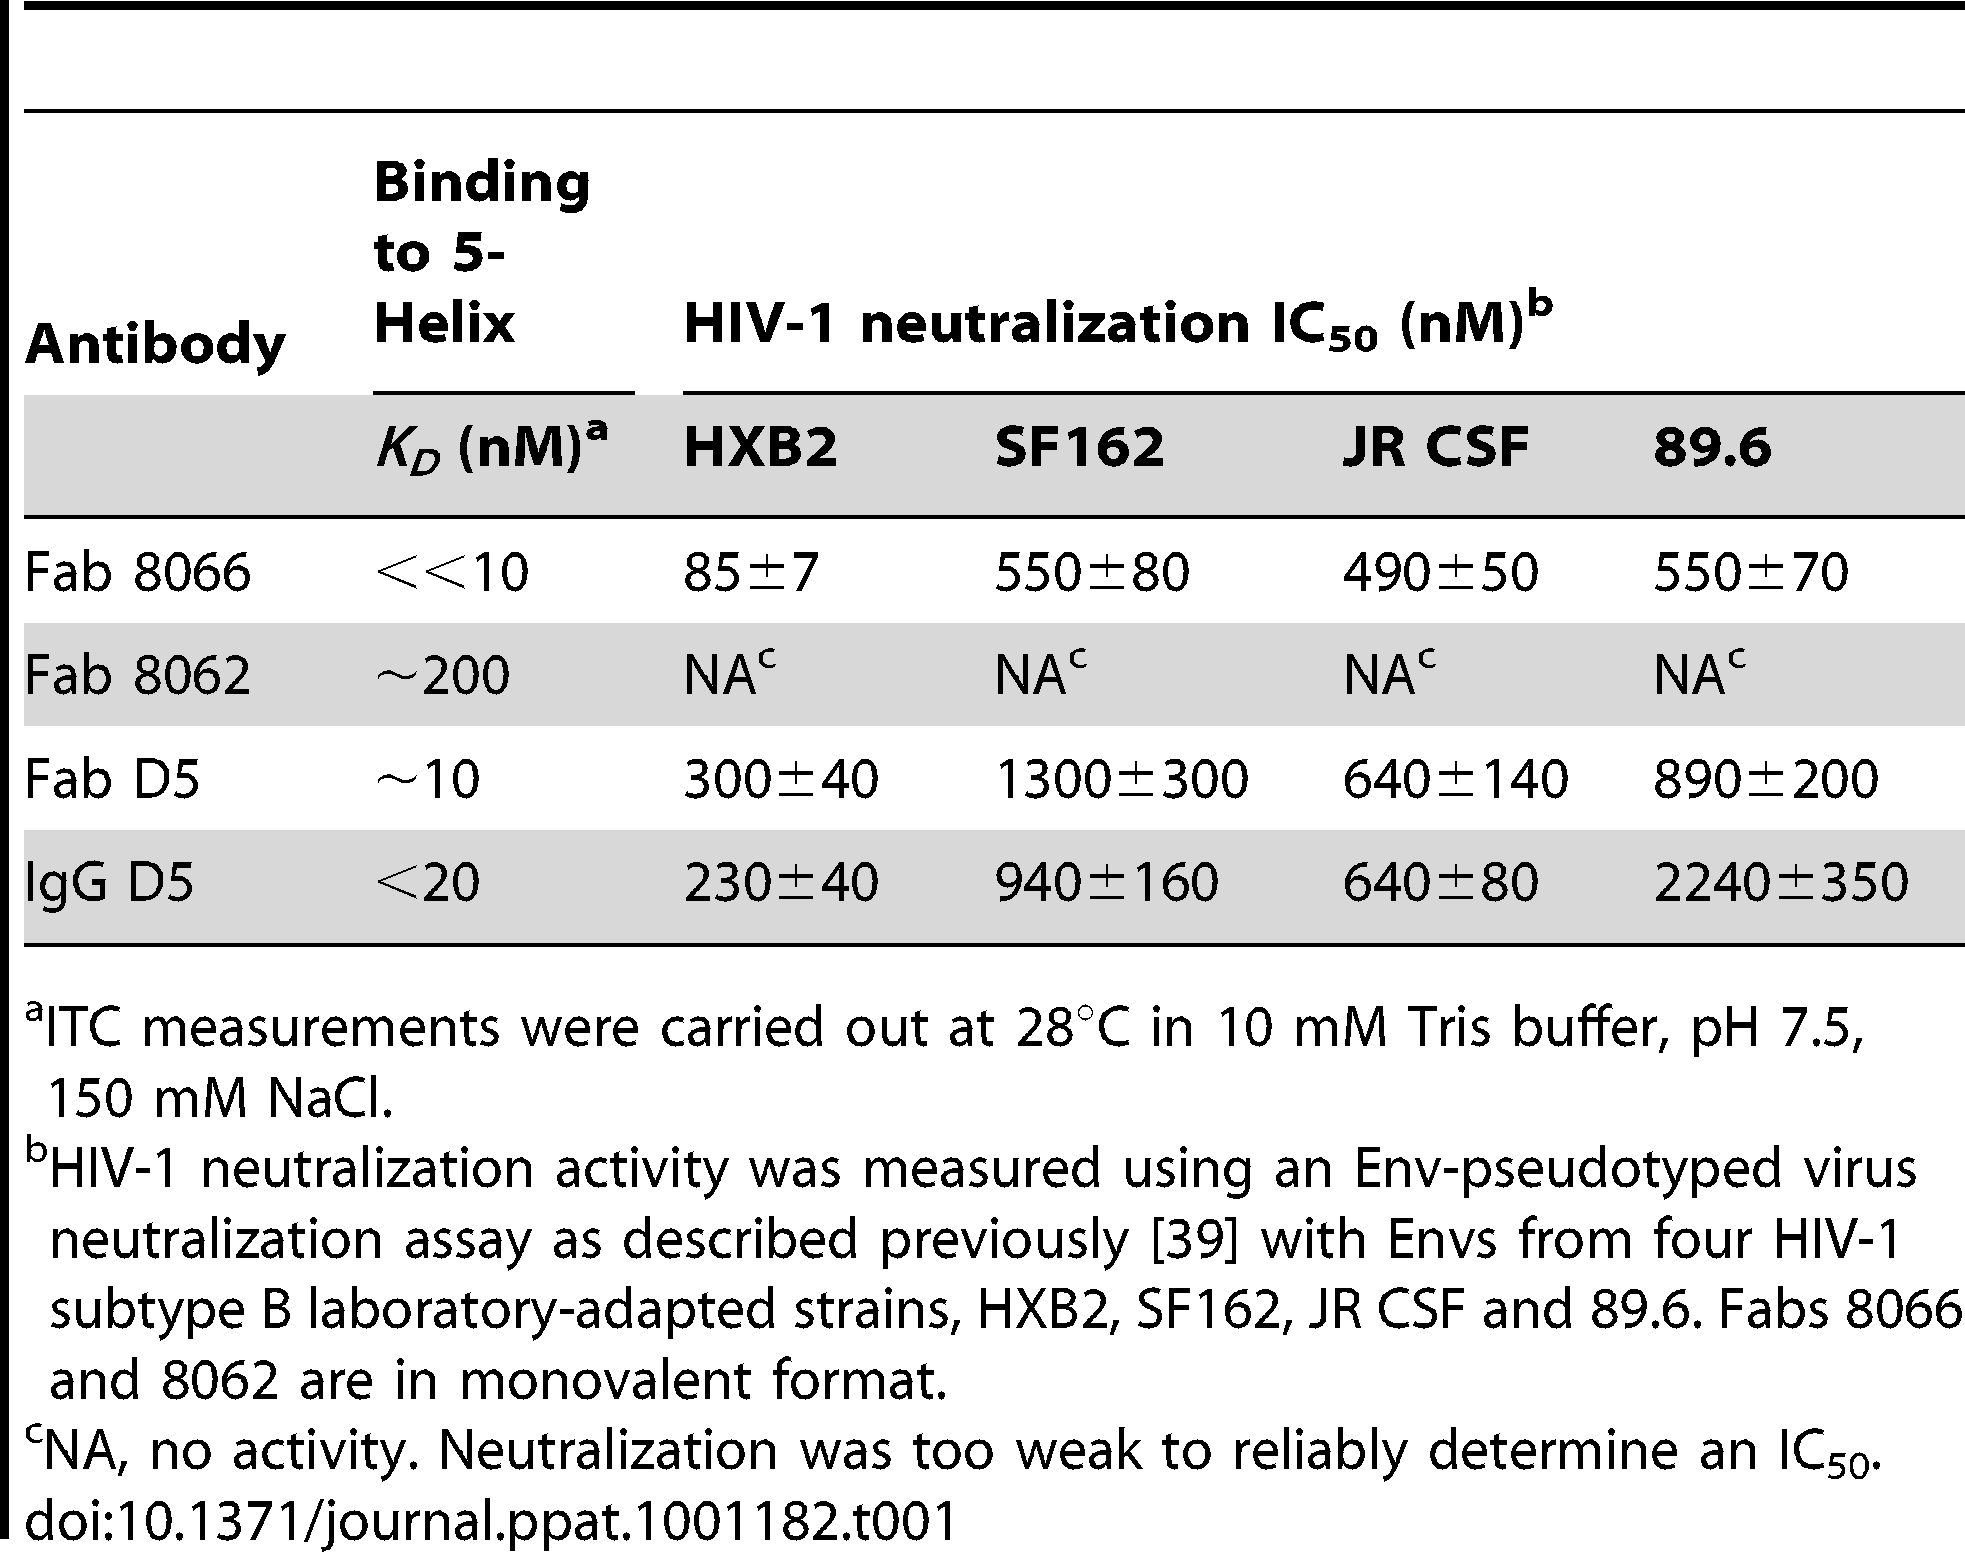 Thermodynamics of 5-Helix binding and HIV-1 neutralization activity.